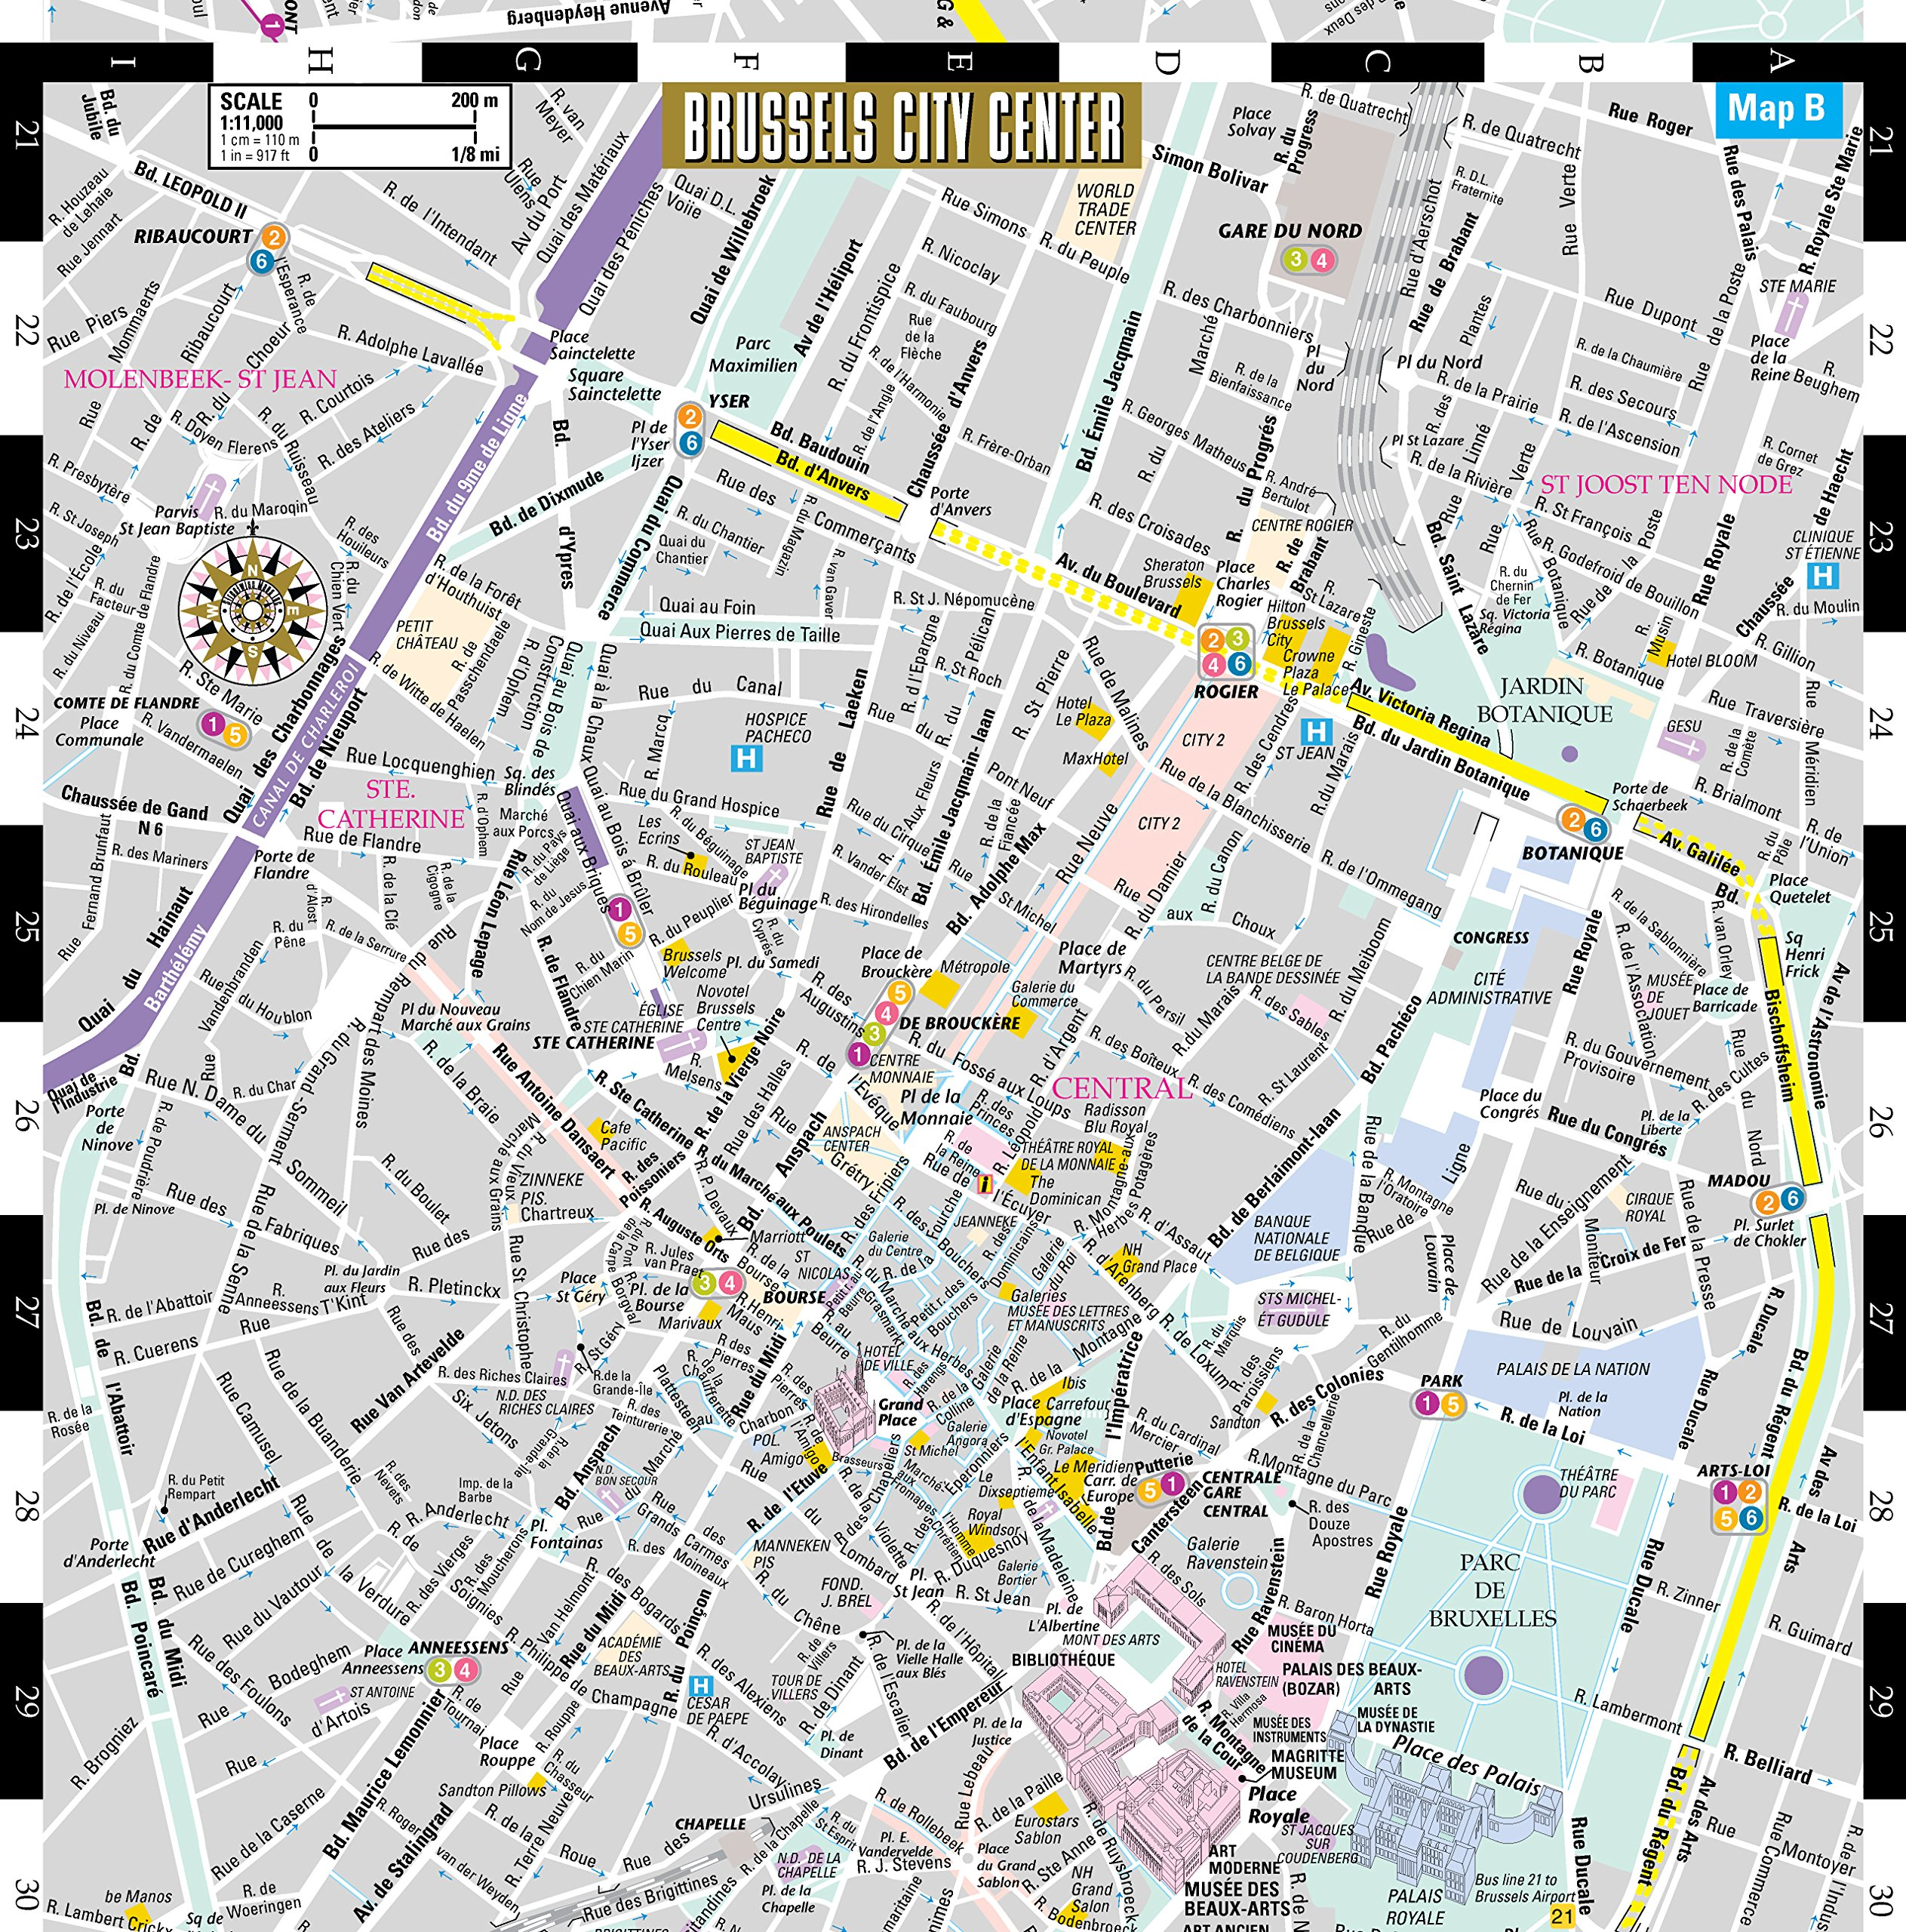 Streetwise Brussels Map Laminated City Center Street Map of